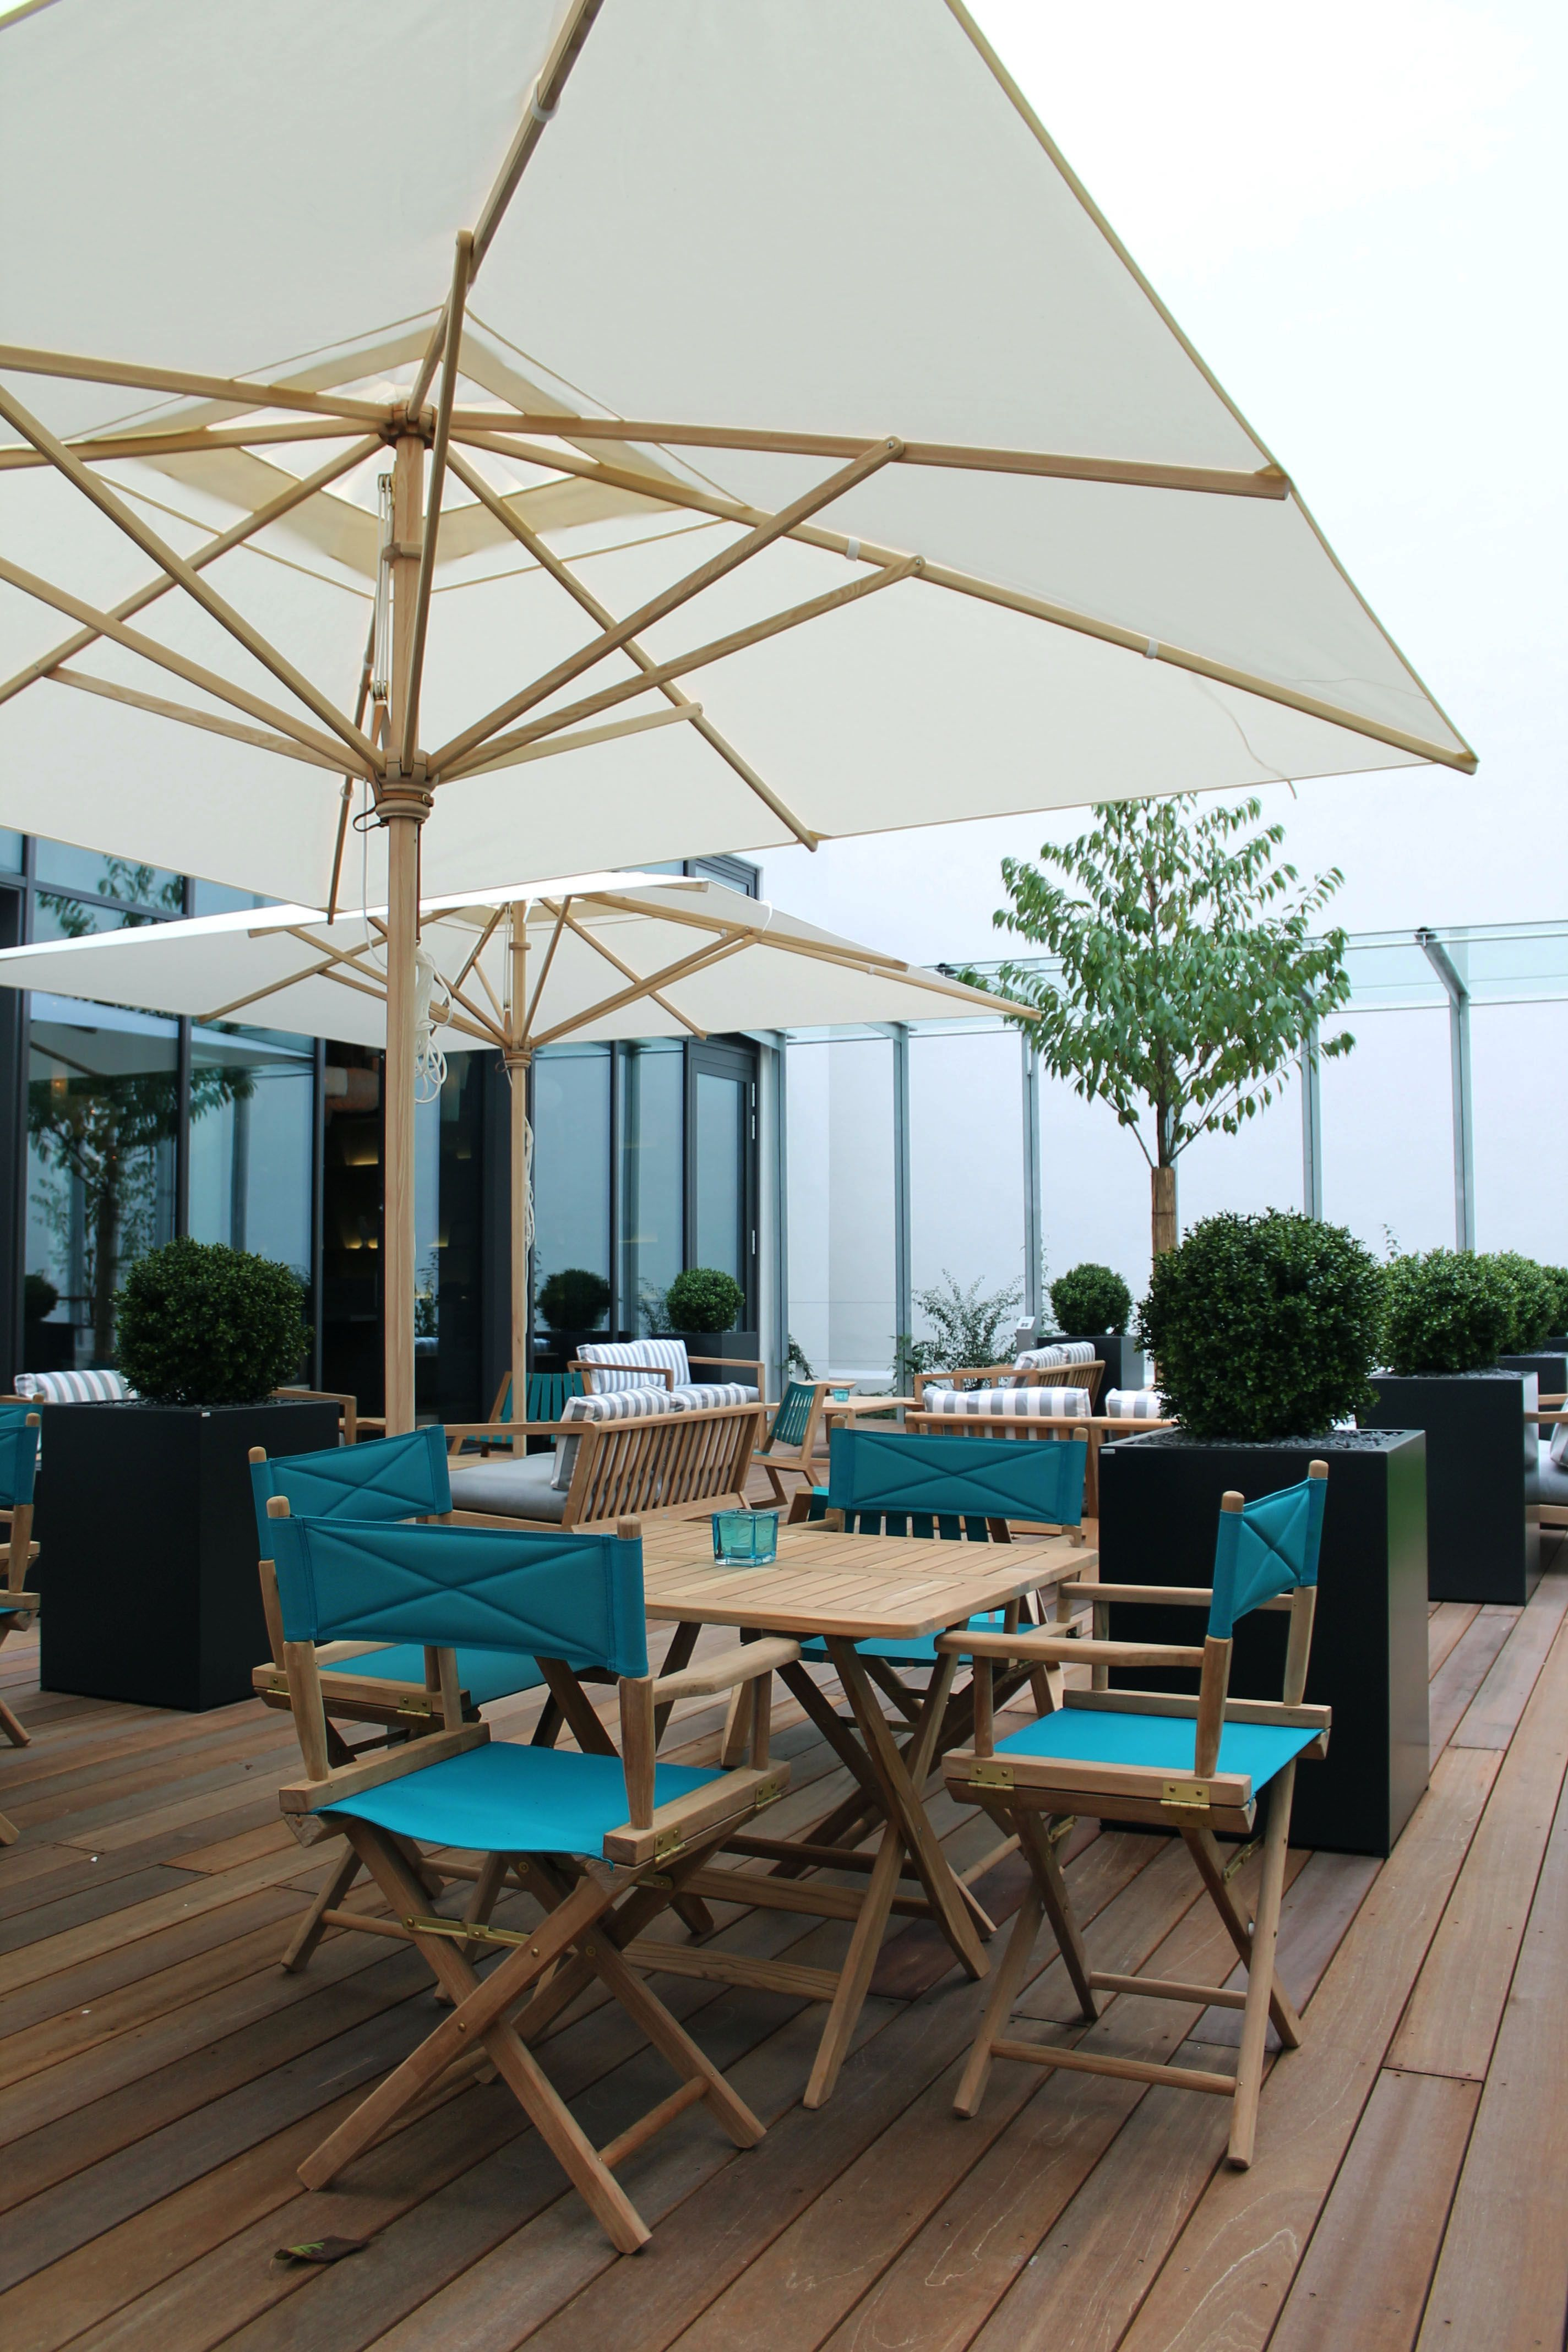 Hotel Bremen Motel One | Motel One Outdoor Lounge